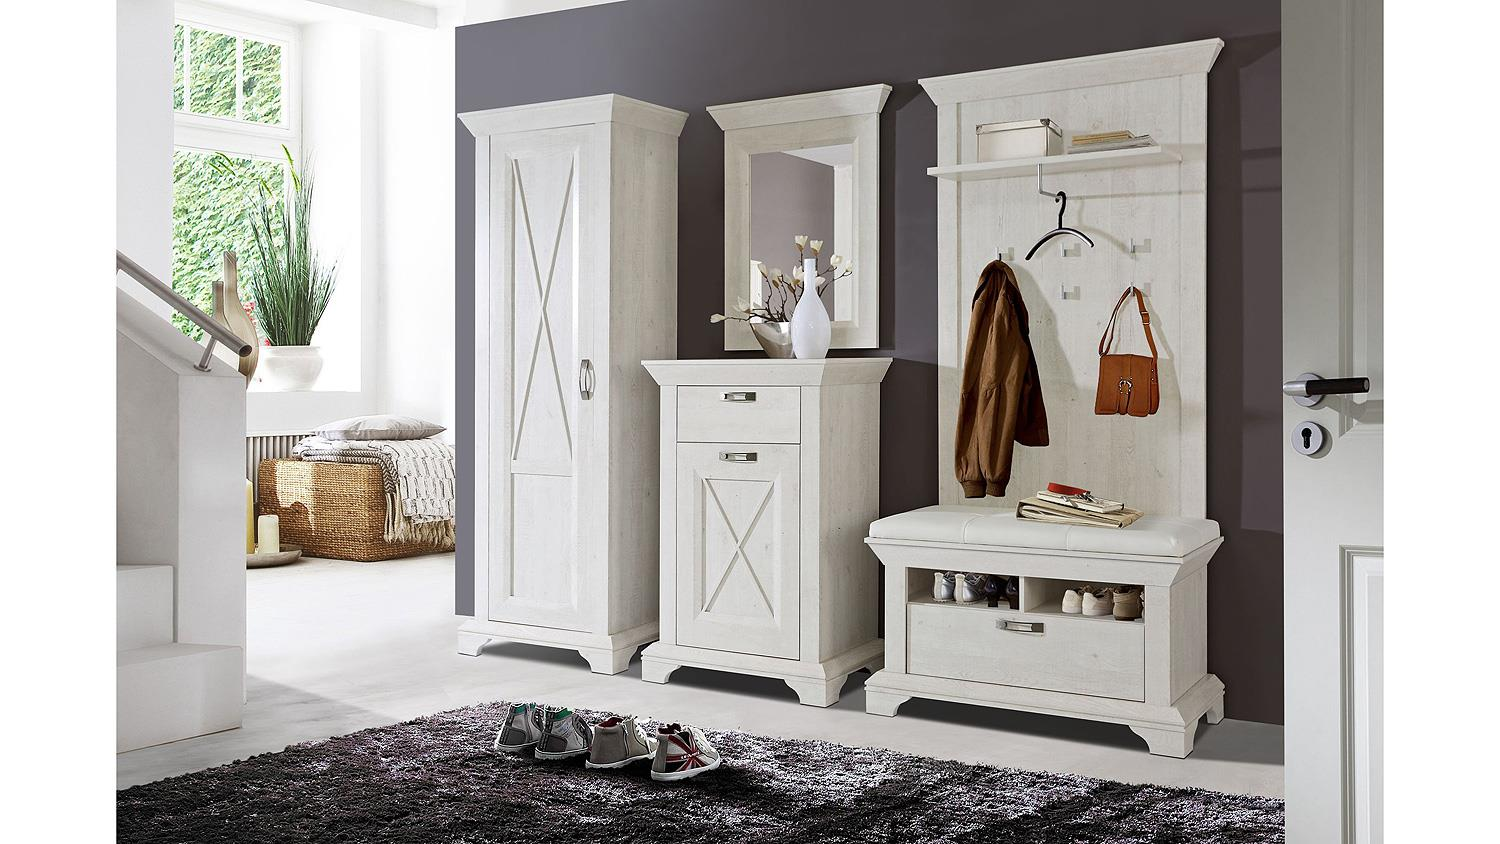 schuhbank kashmir bank garderobe in pinie wei mit kissen. Black Bedroom Furniture Sets. Home Design Ideas